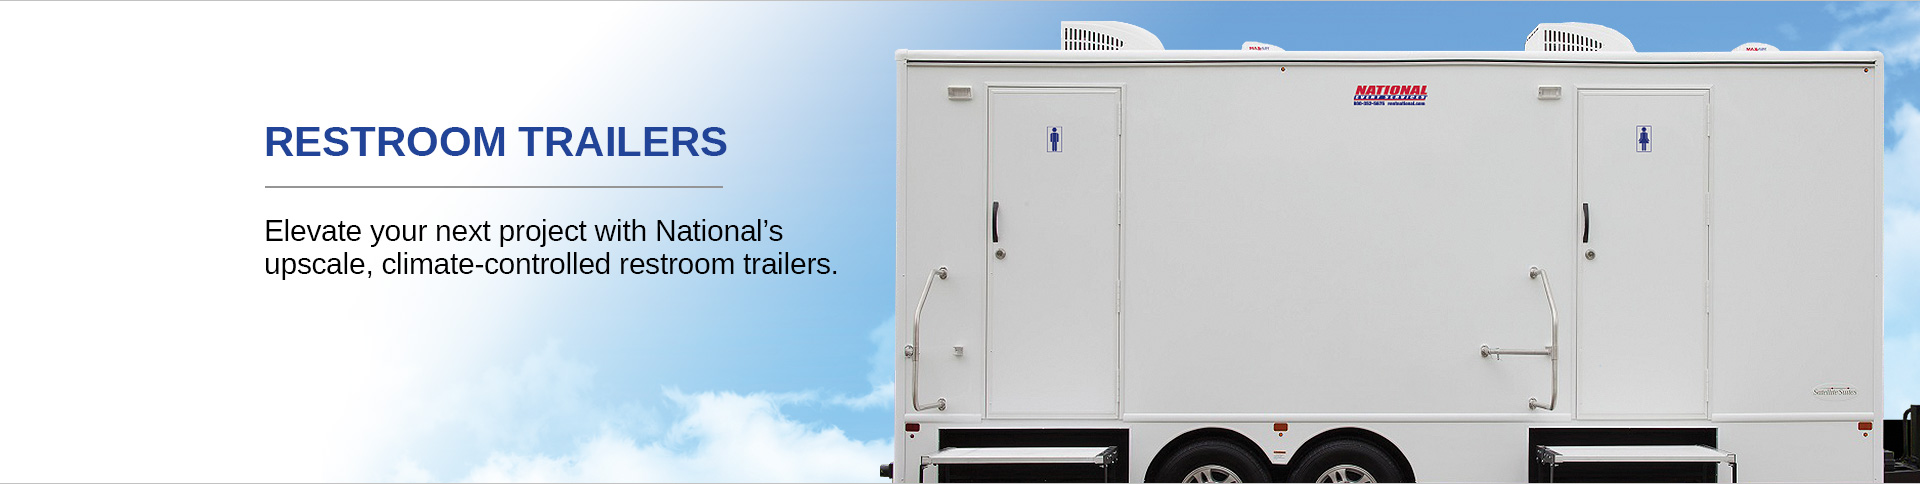 High End Multi-Stall Restroom Trailer for Construction and Special Events